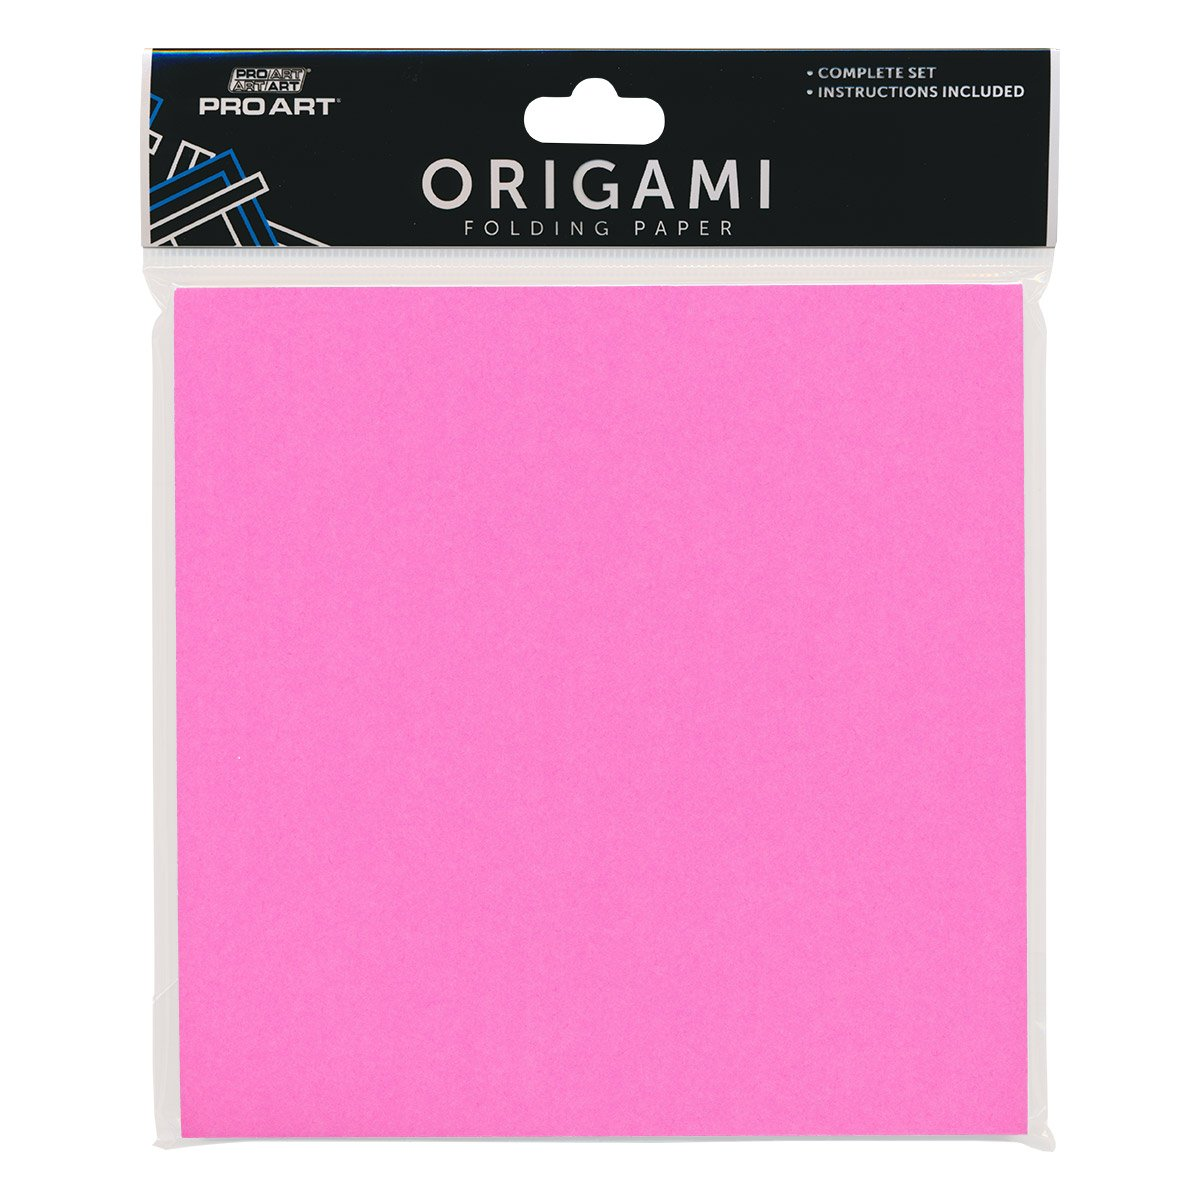 Origami Folding Paper 5 7/8 Squares 100 Sheets